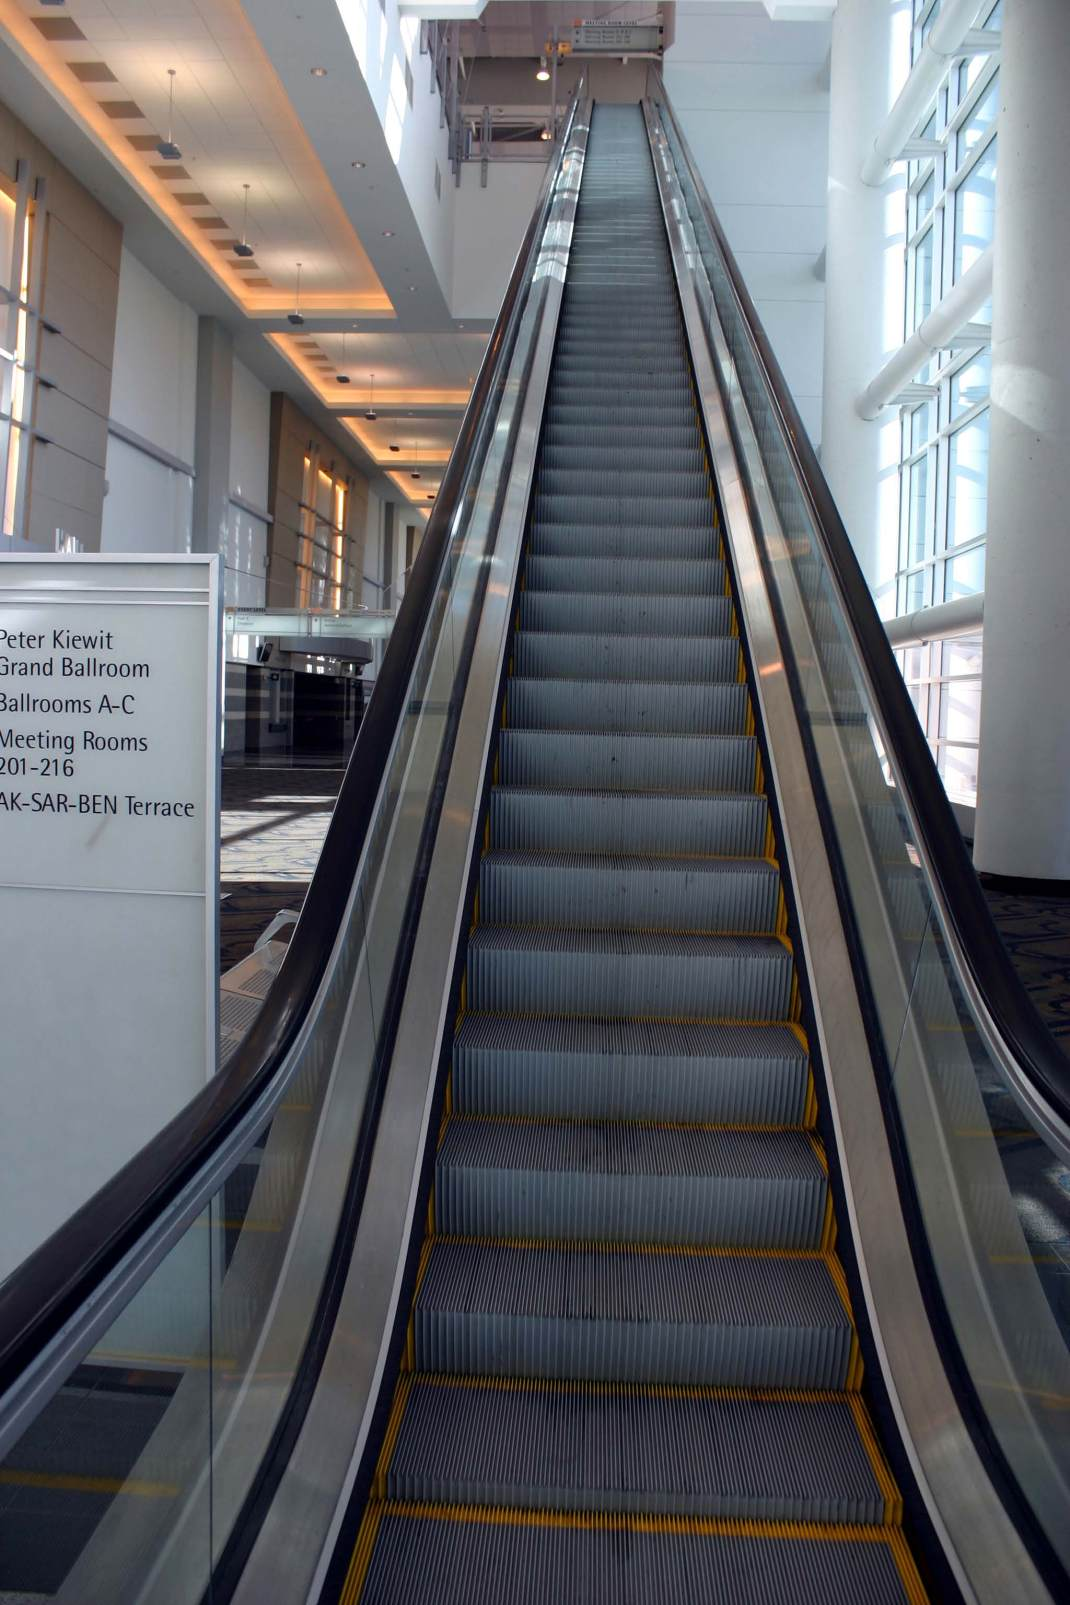 The UP Escalator at the Qwest Center in Omaha.